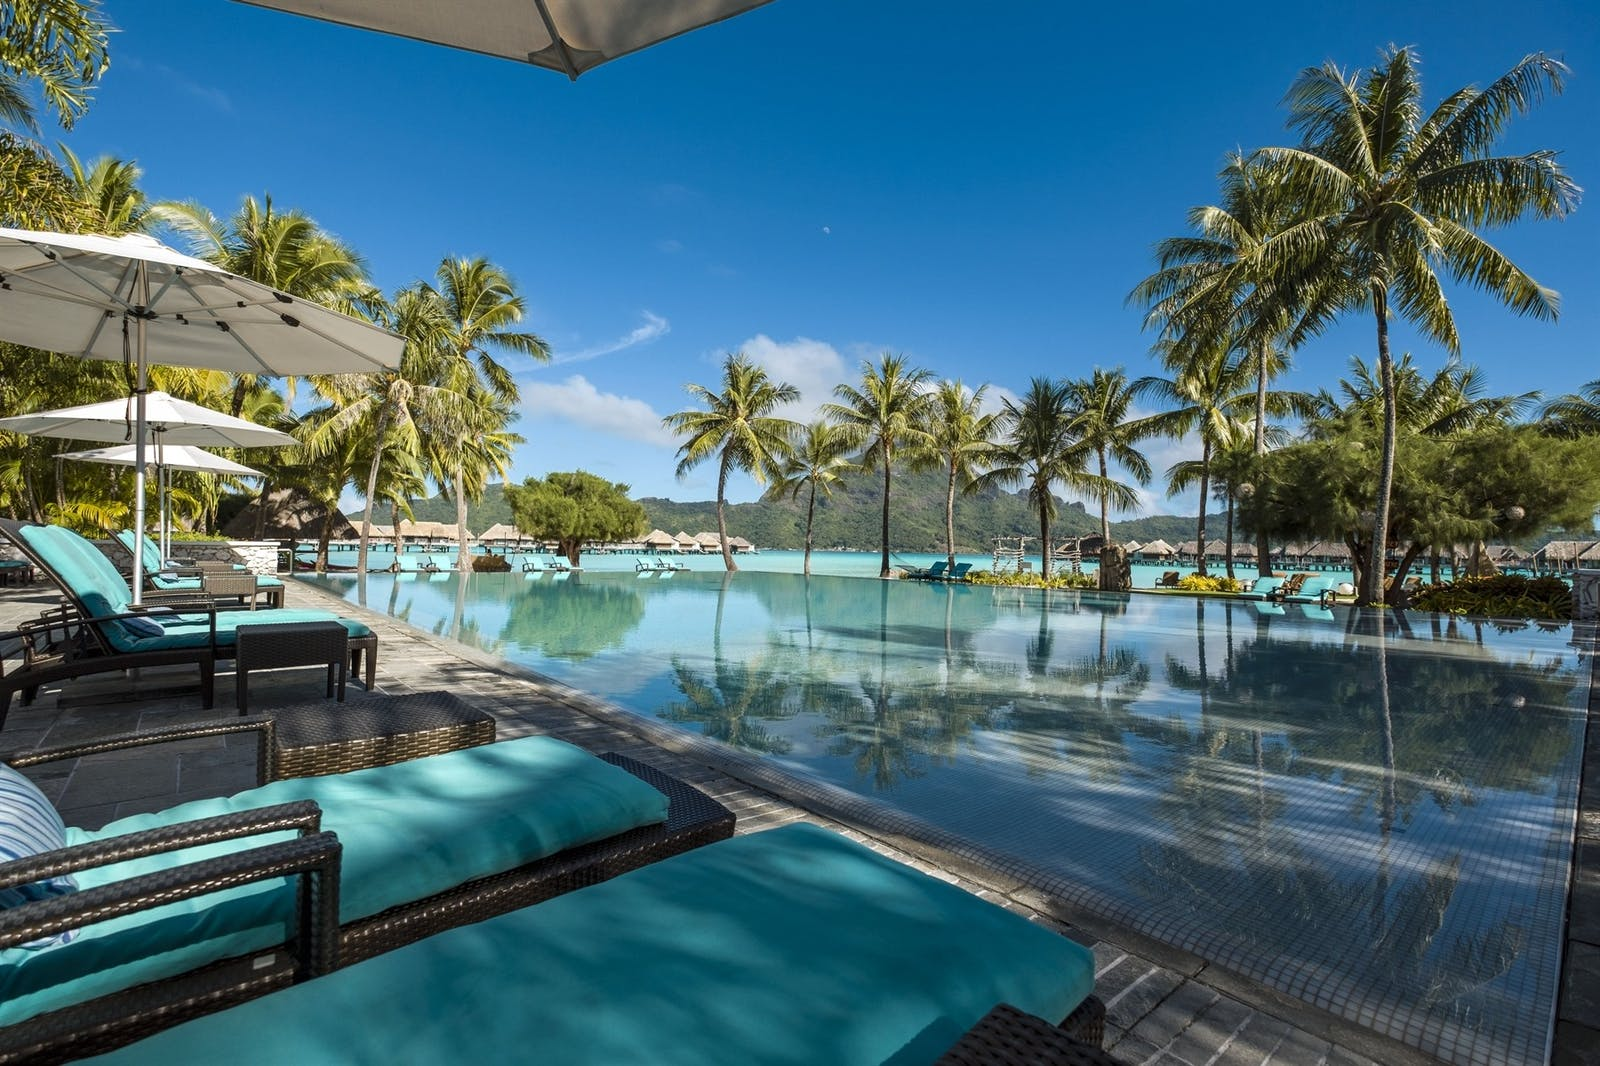 Main Pool at InterContinental Bora Bora Resort & Thalasso Spa, French Polynesia